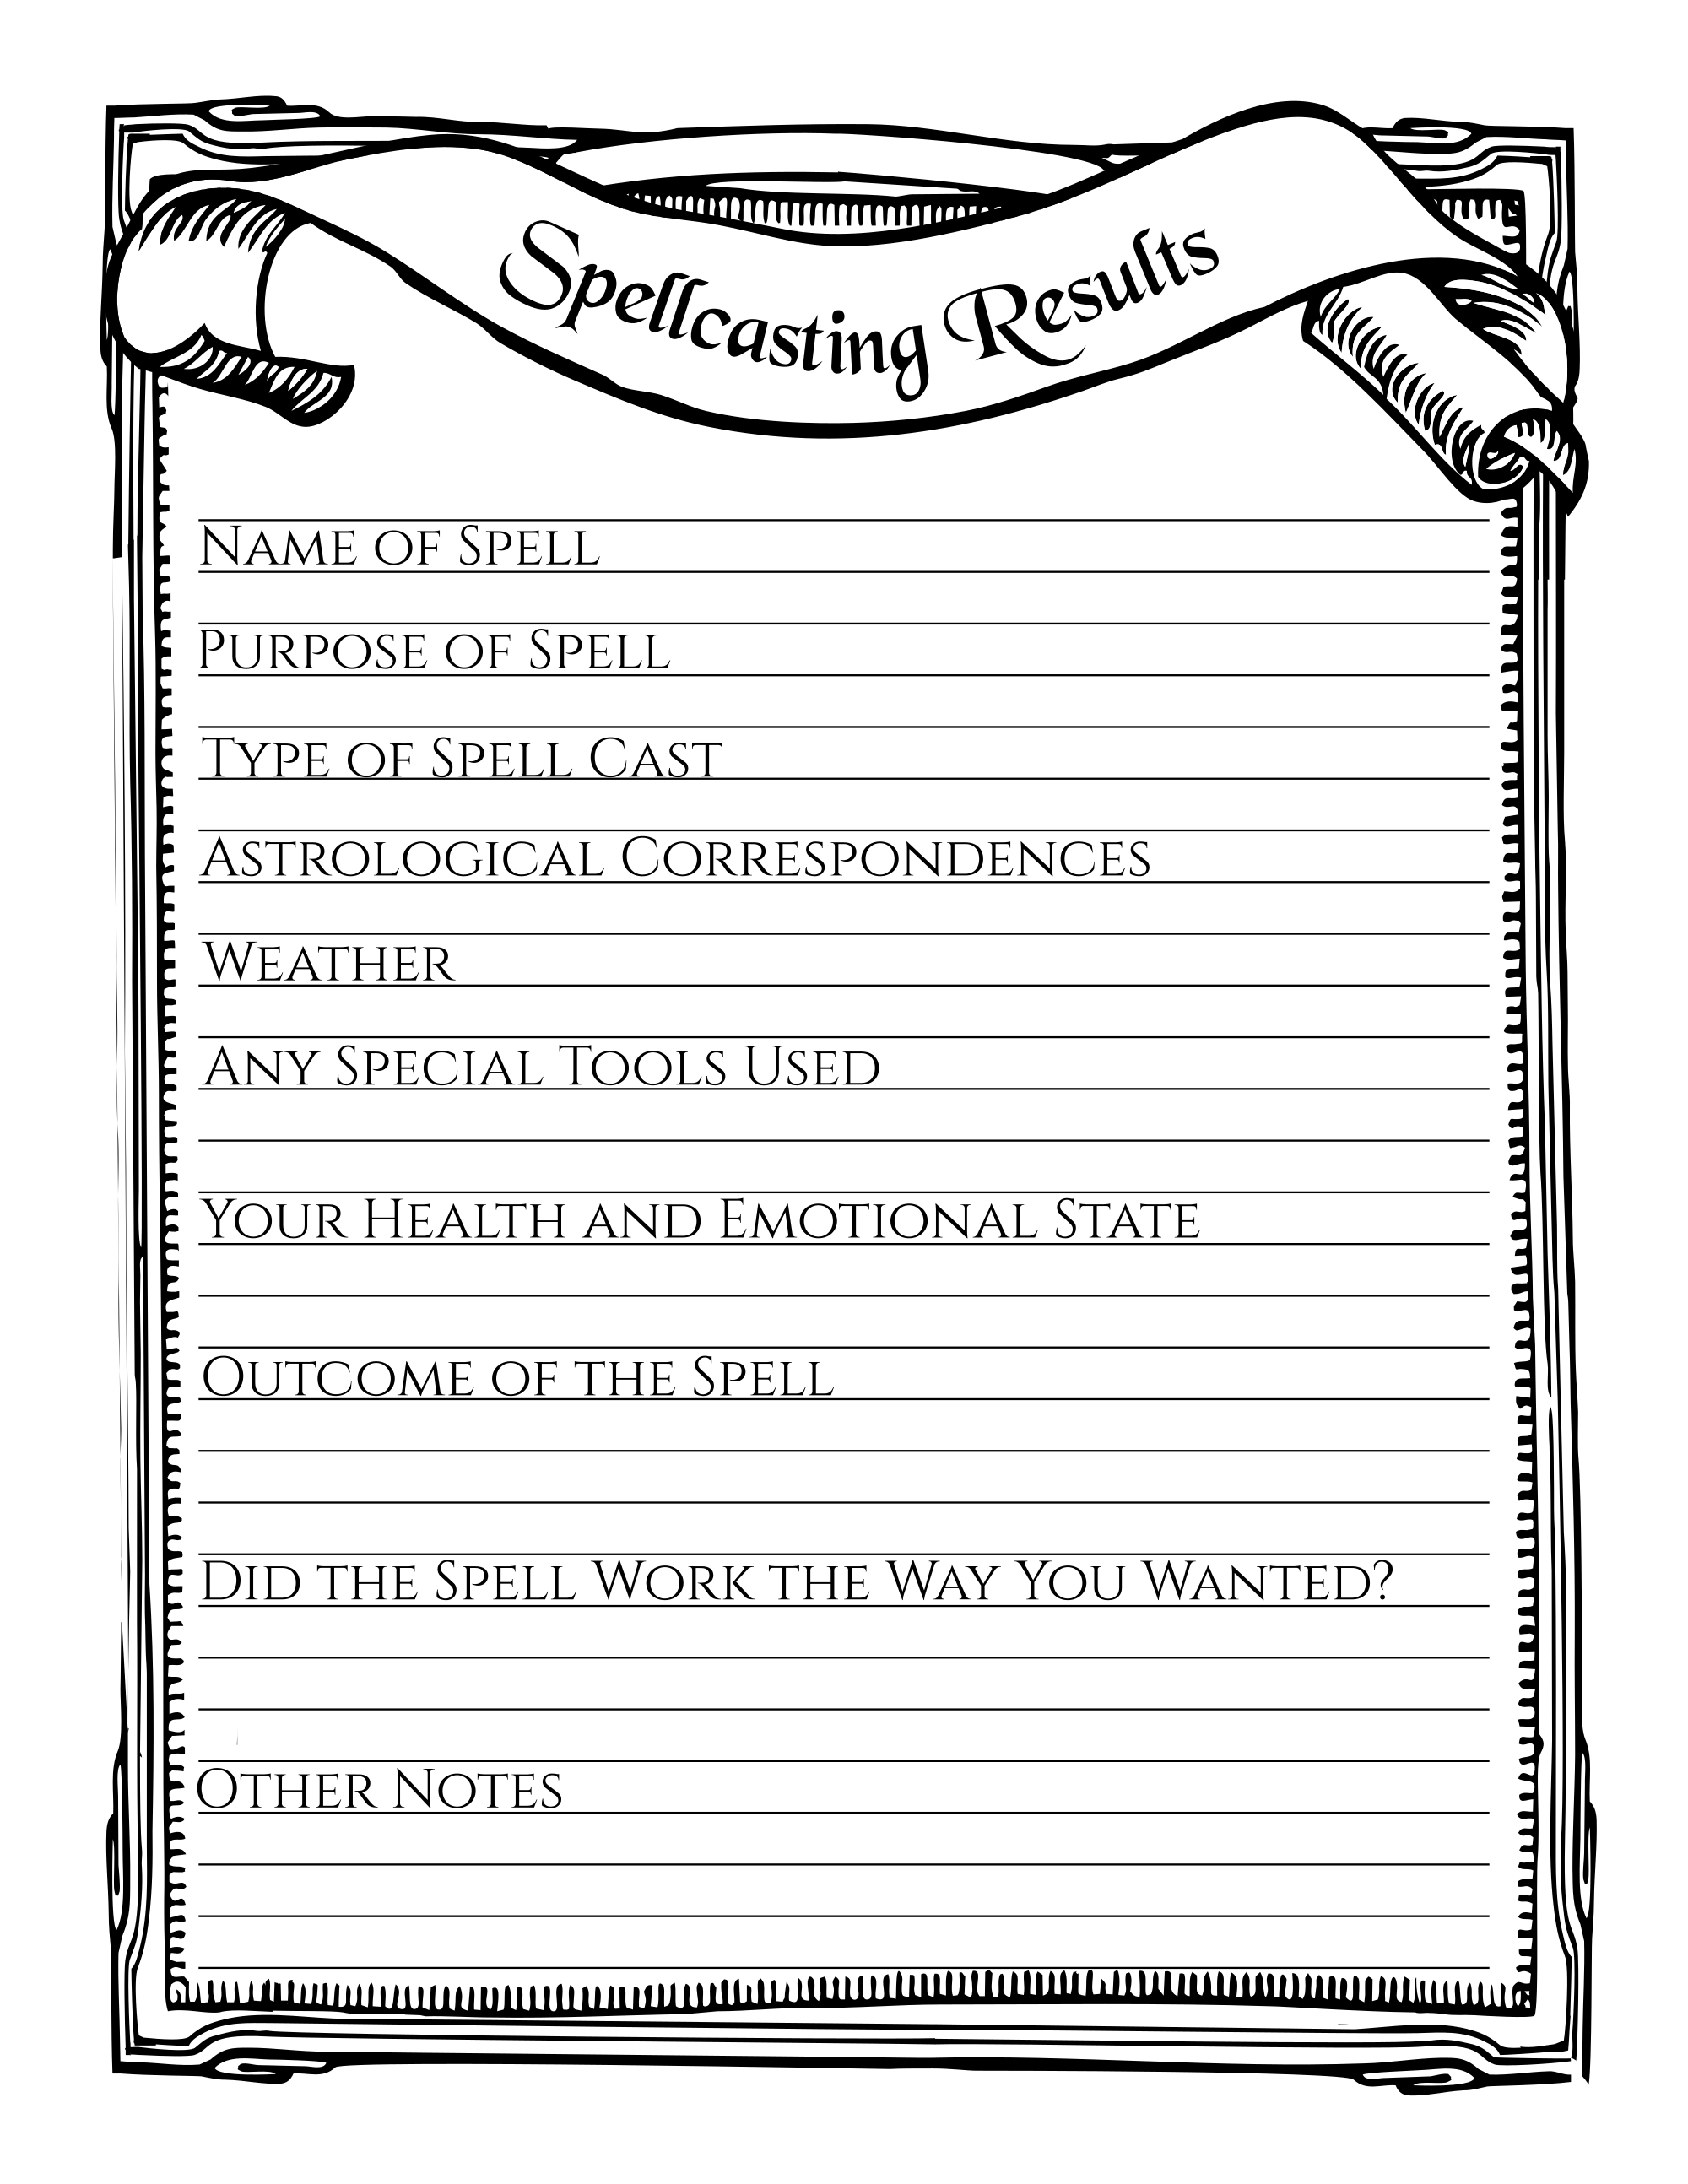 Spellcasting Results Printable Stationary Page Book Of